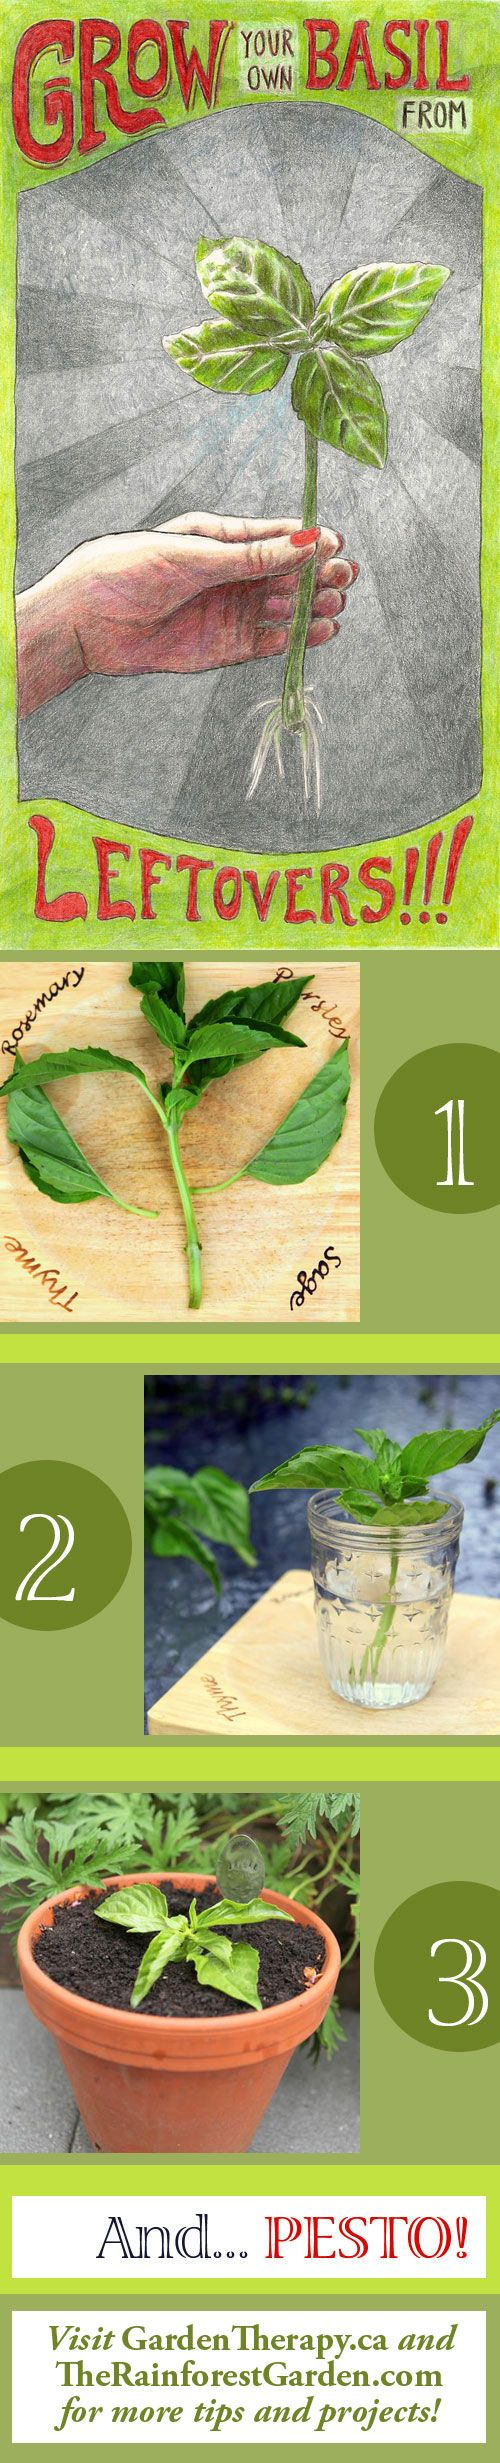 How to Grow Basil from Cuttings (via @garden_therapy and @rainforestgrdn) #gardening #herbs #basil